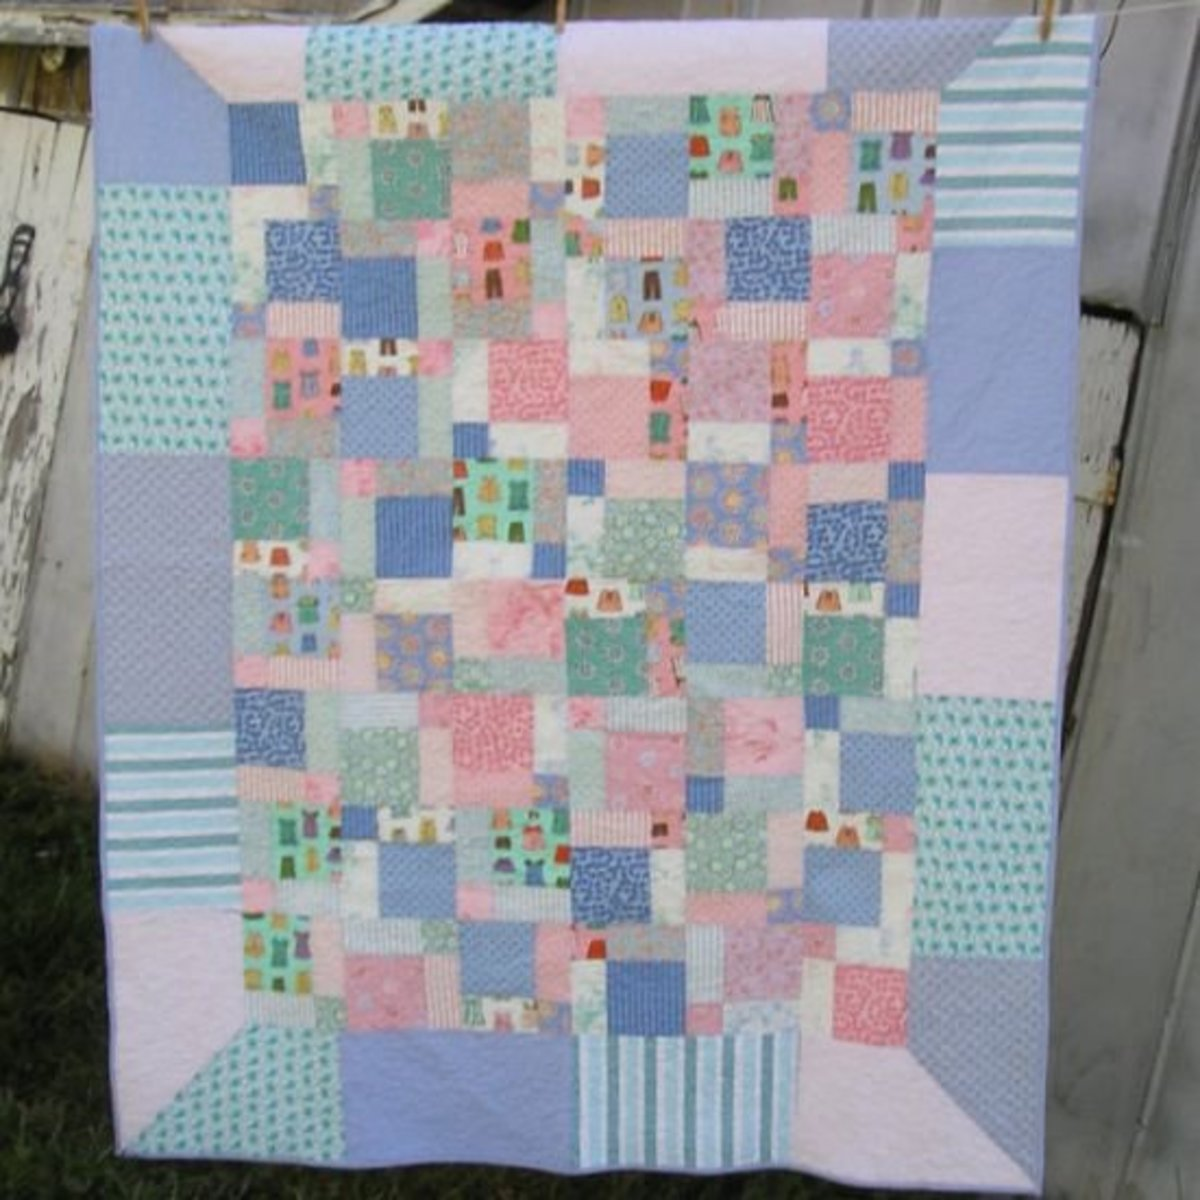 For this quilt, I used a fat quarter bundle to create a boat load of random disappearing nine-patch squares that are framed by mitered borders.